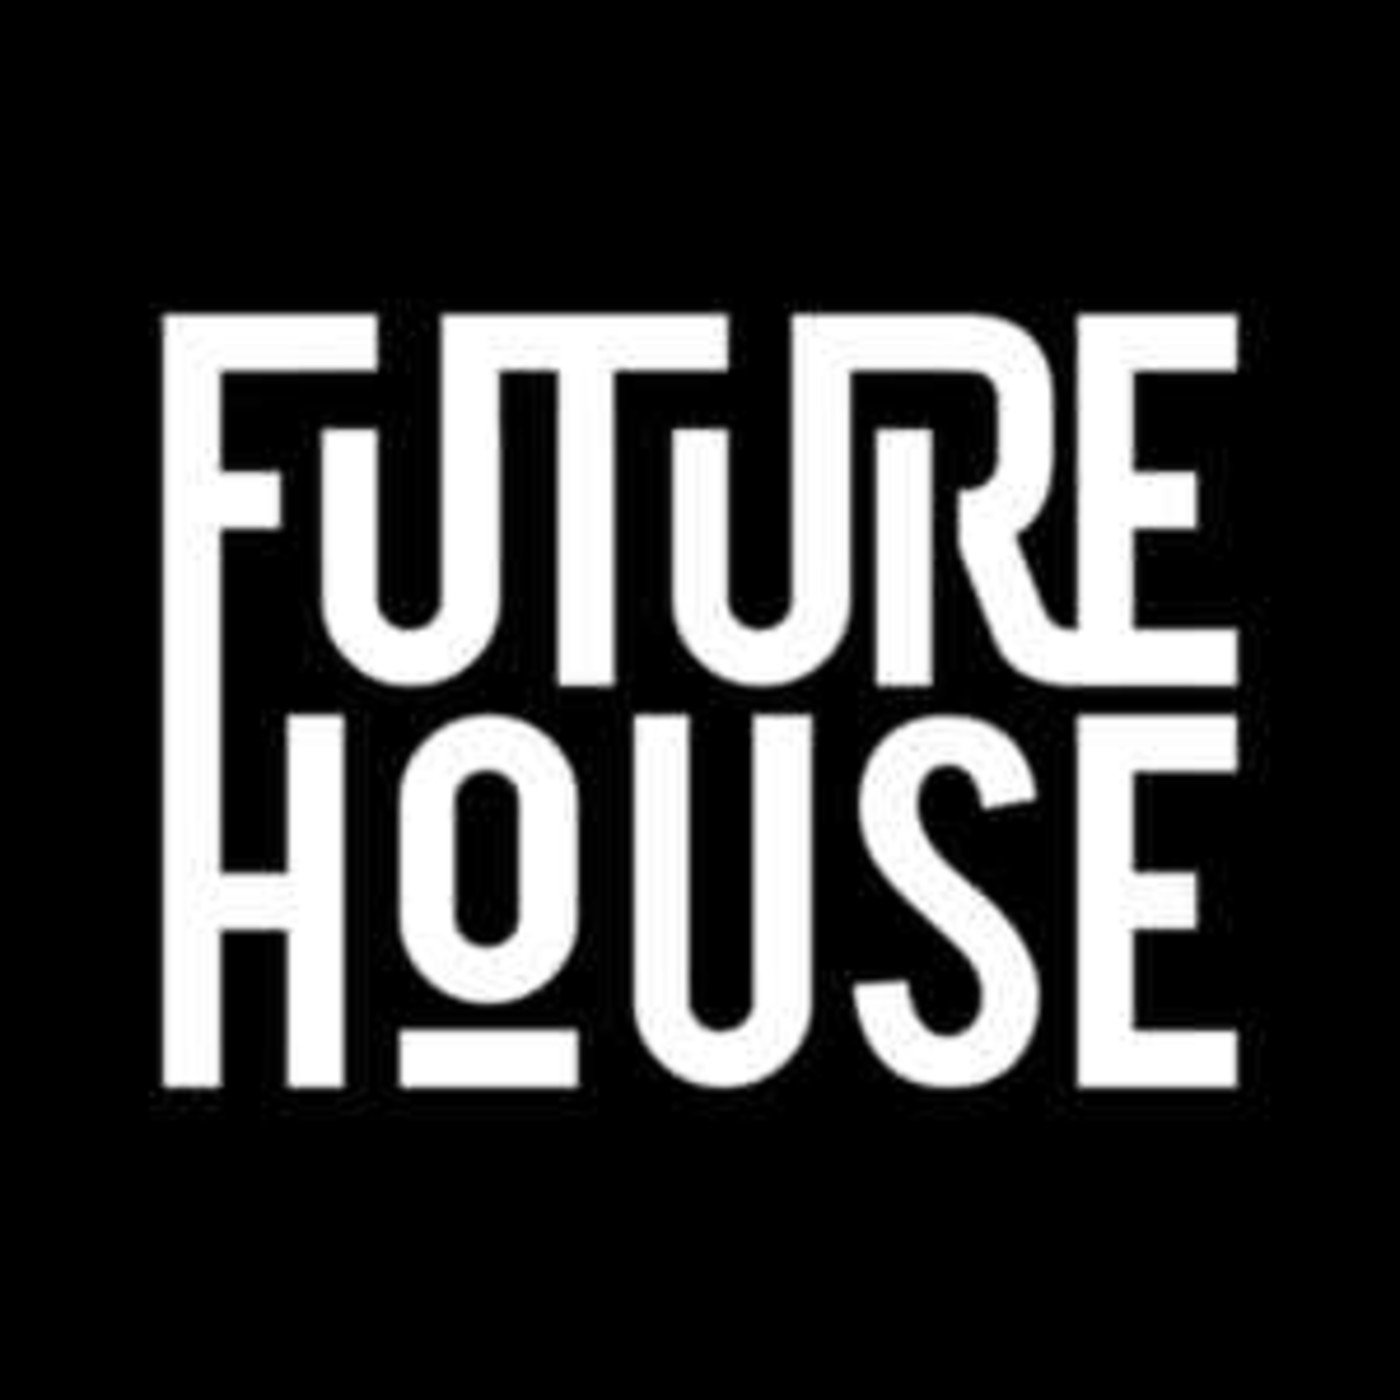 Futurehouse homesessions vol. 01